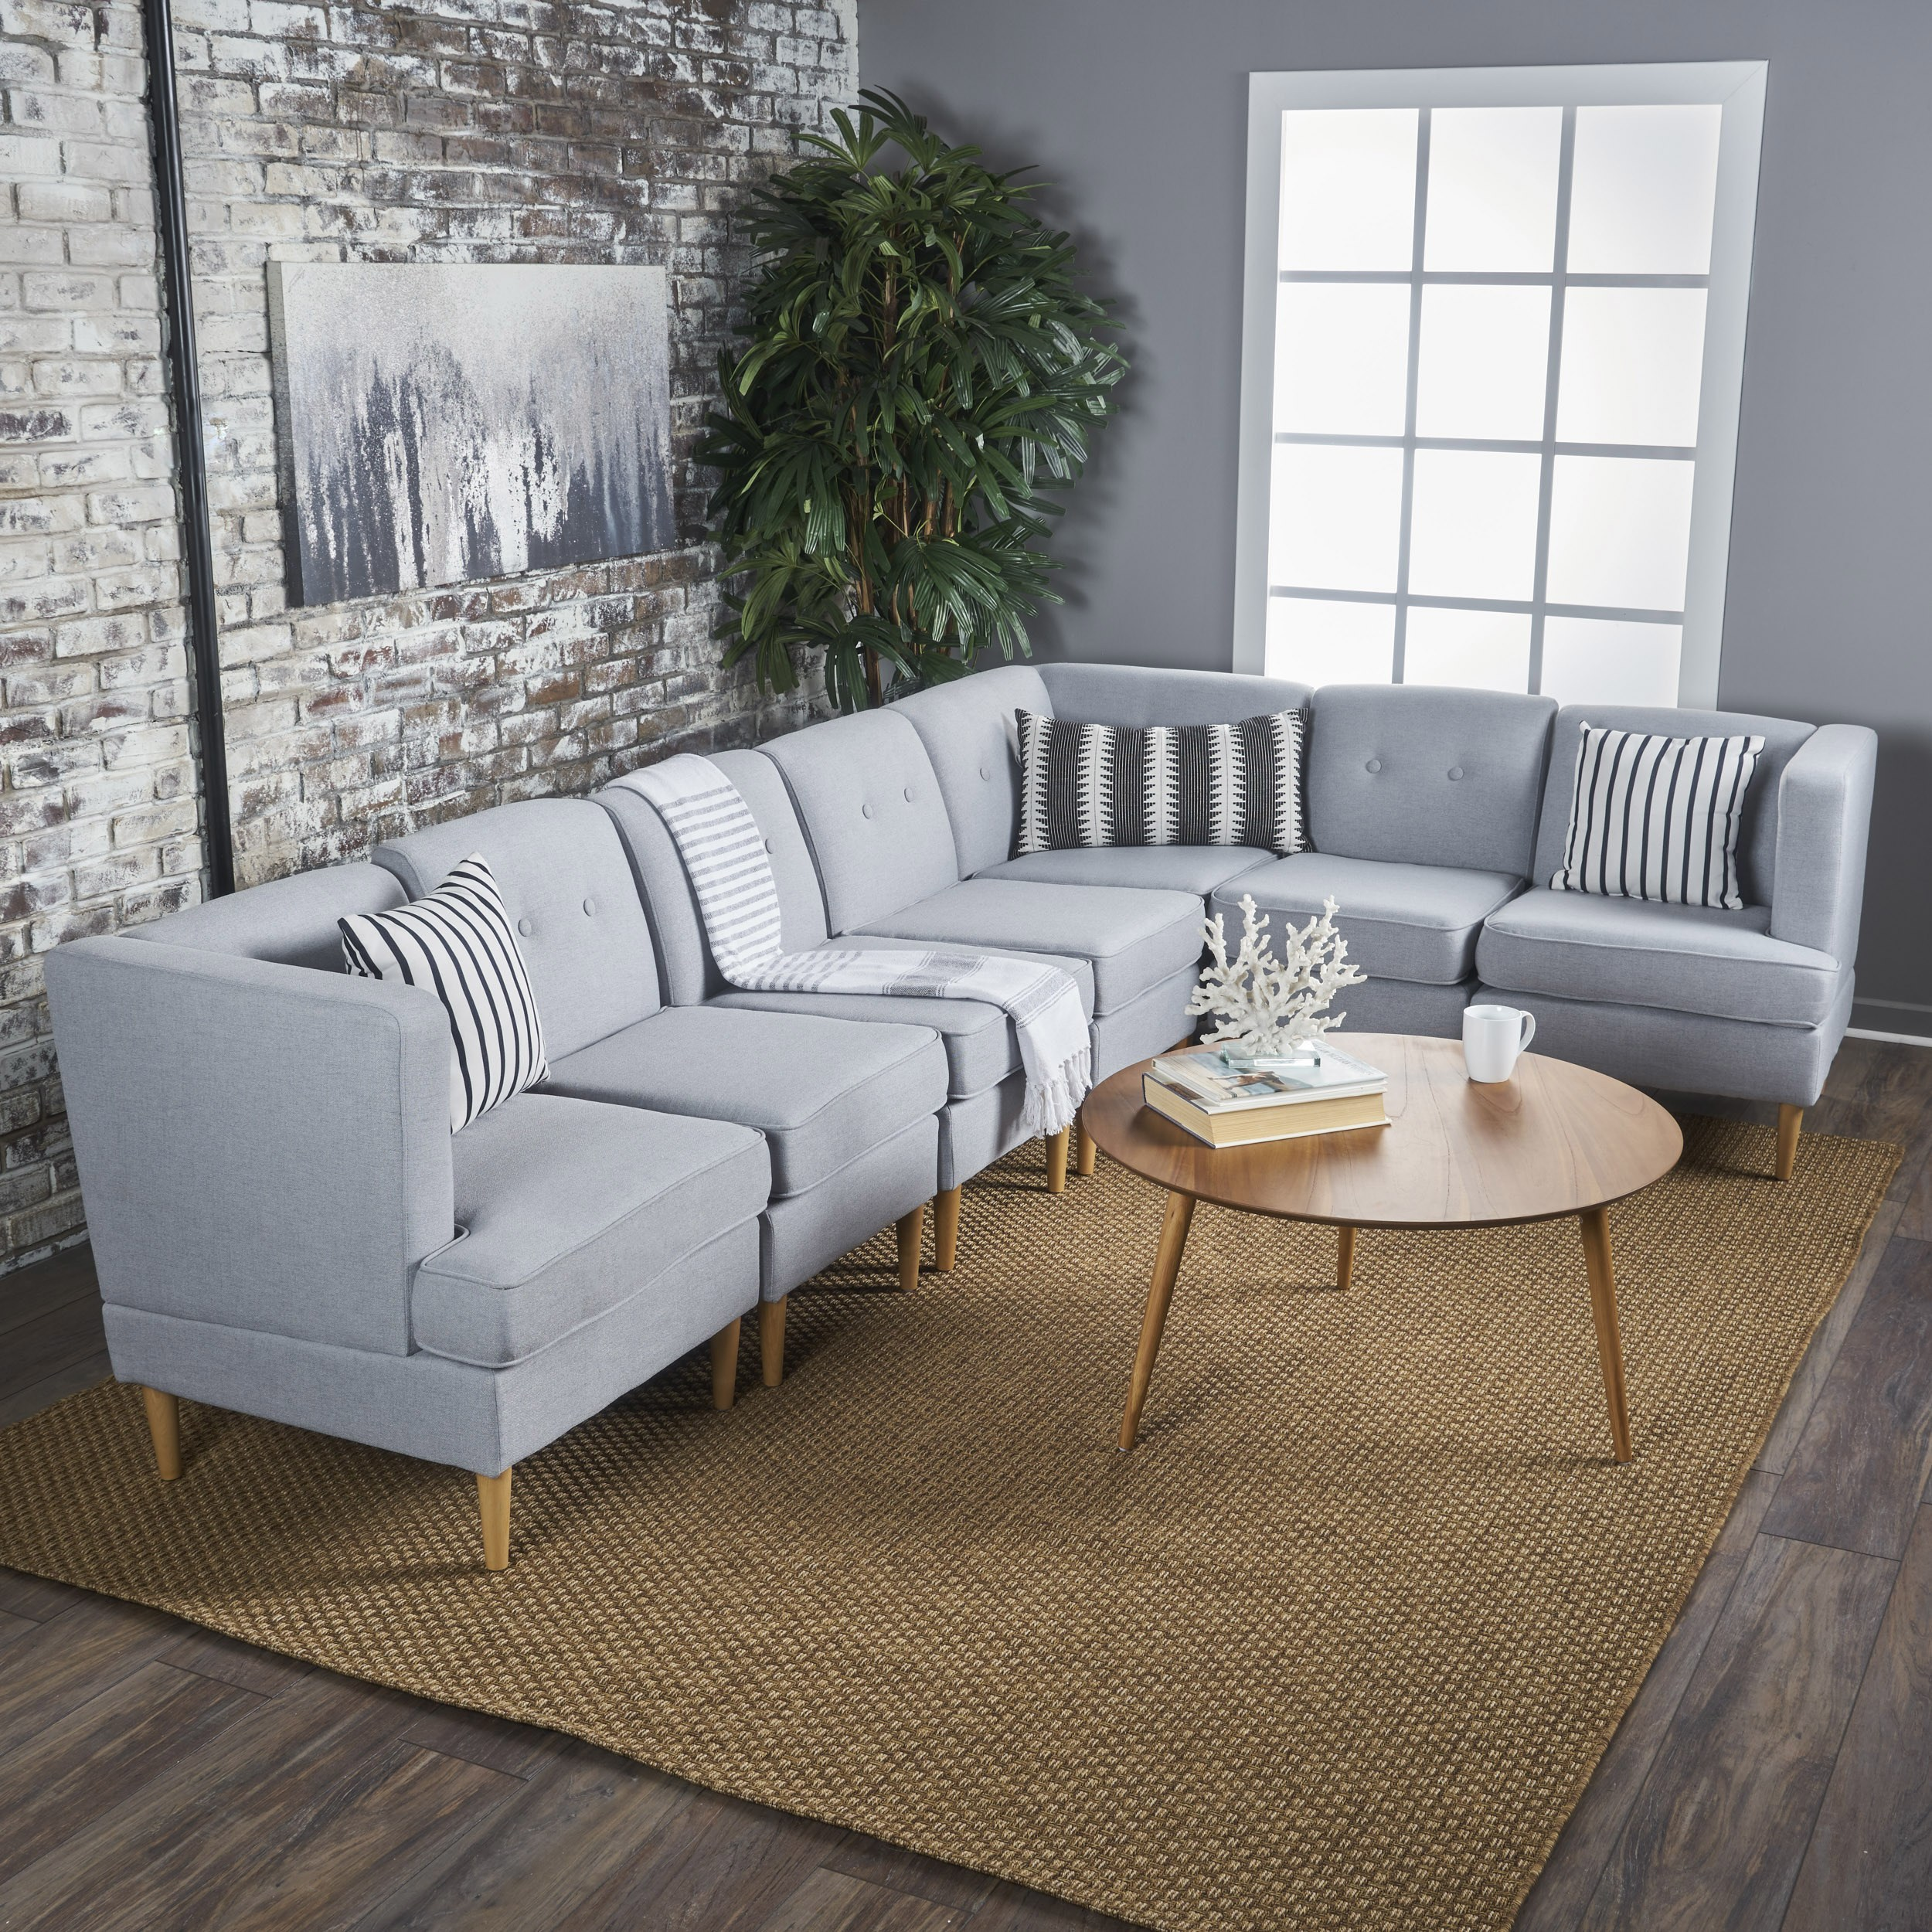 Terrific Christopher Knight Home Milton Mid Century Modern 7 Piece Fabric Sectional Sofa Set By Walmart Com Unemploymentrelief Wooden Chair Designs For Living Room Unemploymentrelieforg